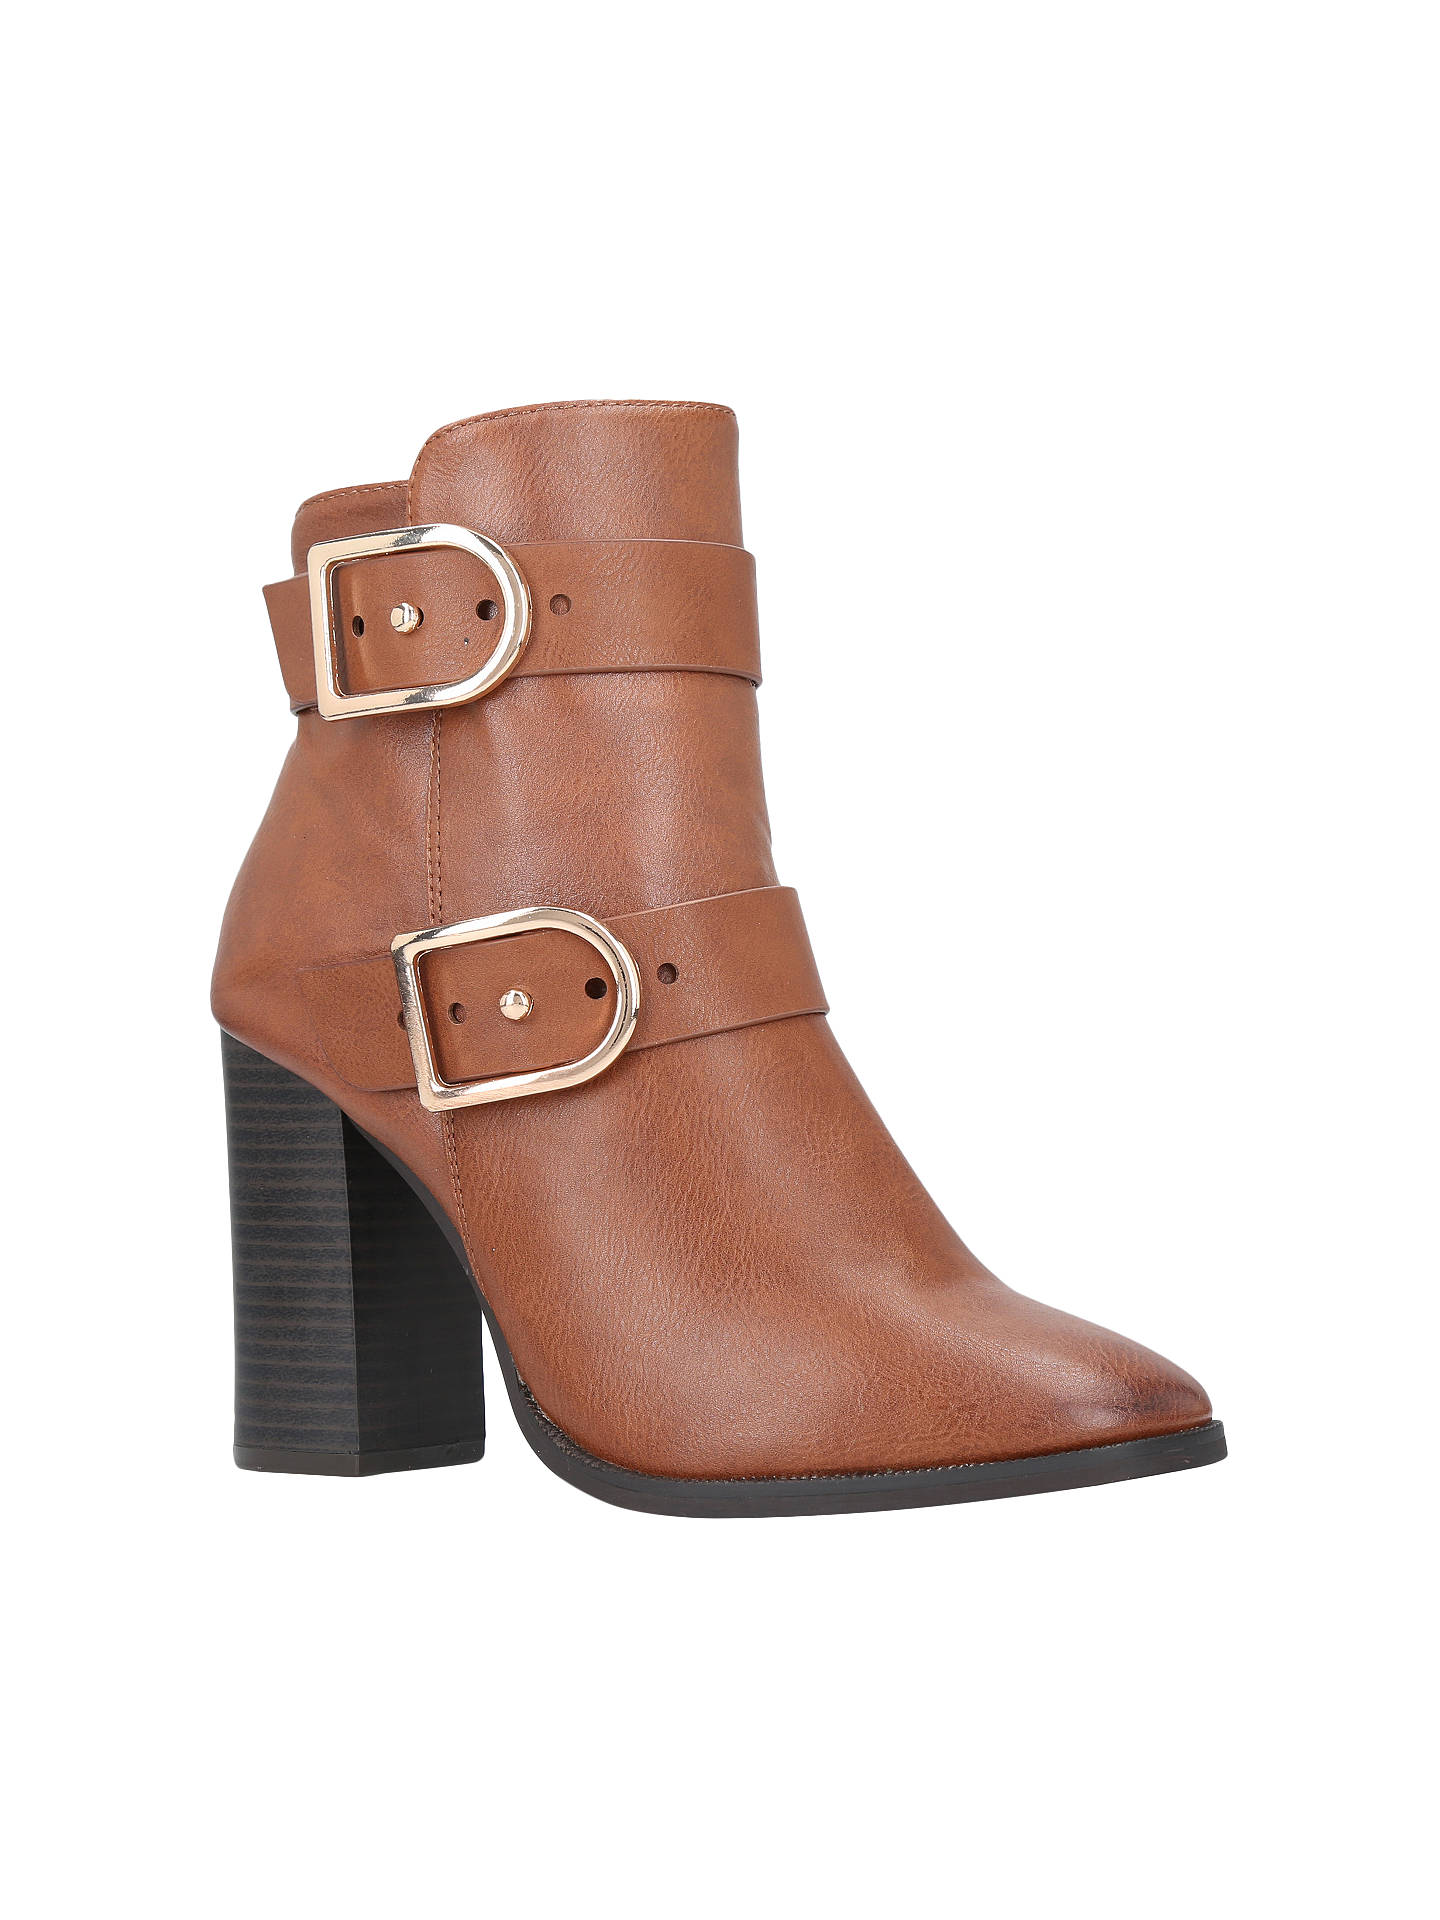 ccdfb1e13ae1 Miss KG Spring Block Heeled Ankle Boots at John Lewis   Partners